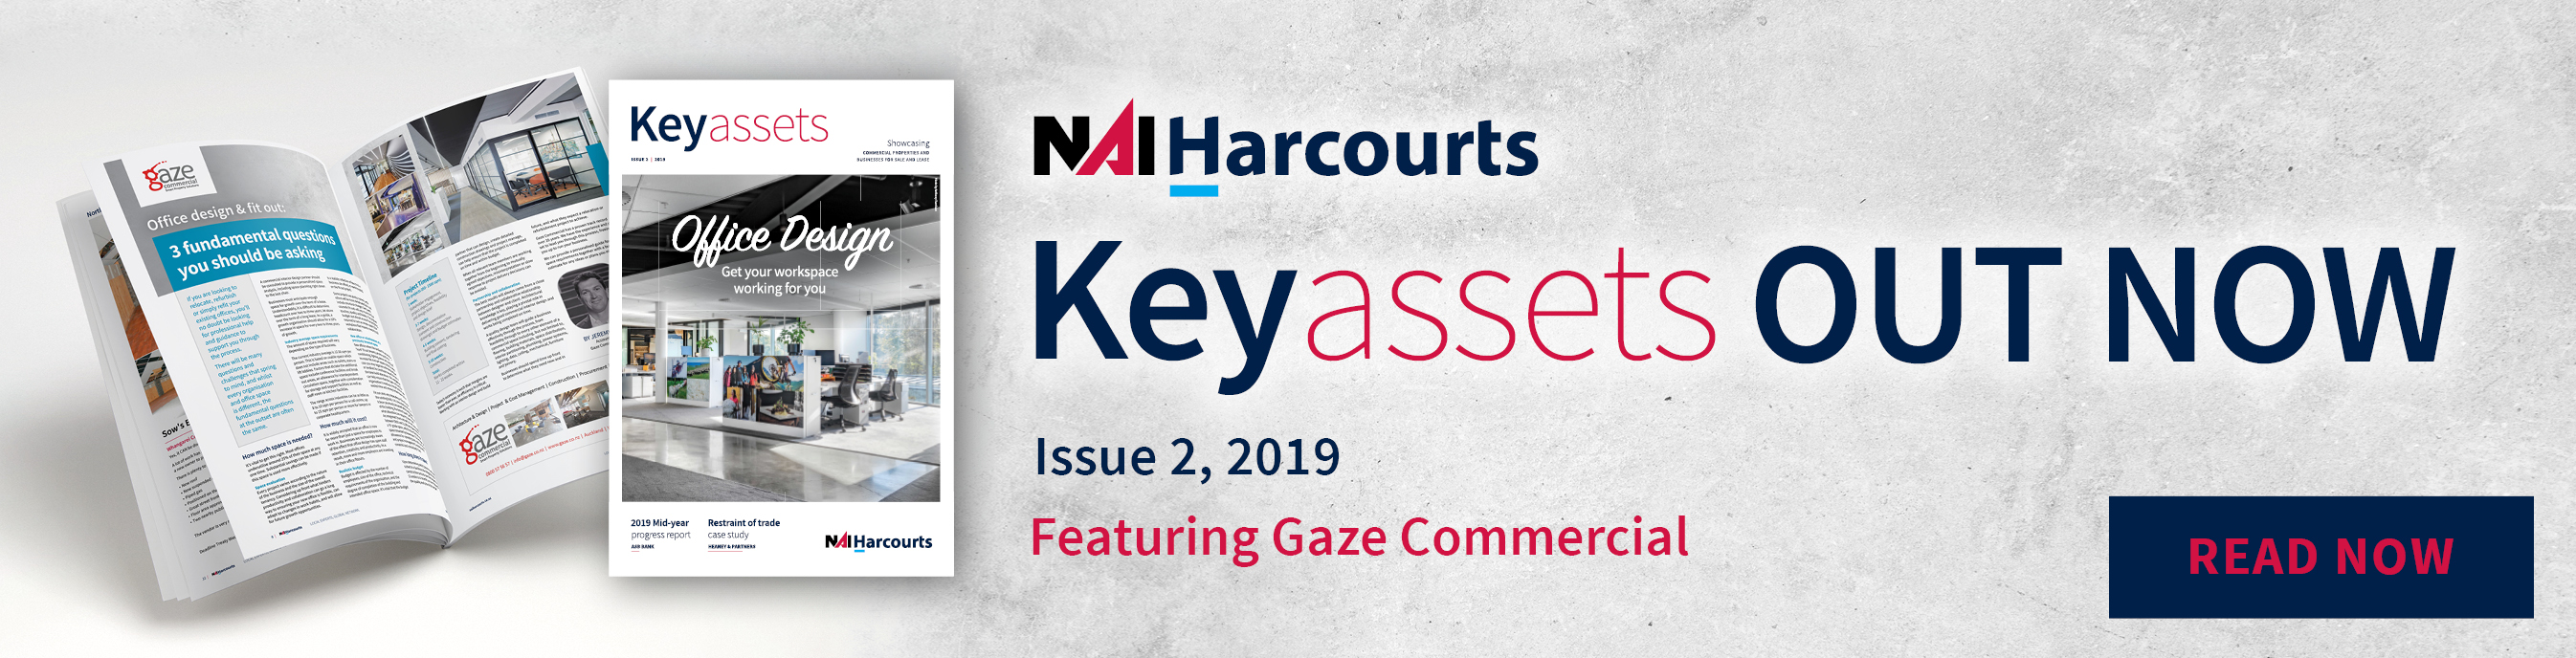 201907 Key Assets Email Sig OUT NOW FOR GAZE v6